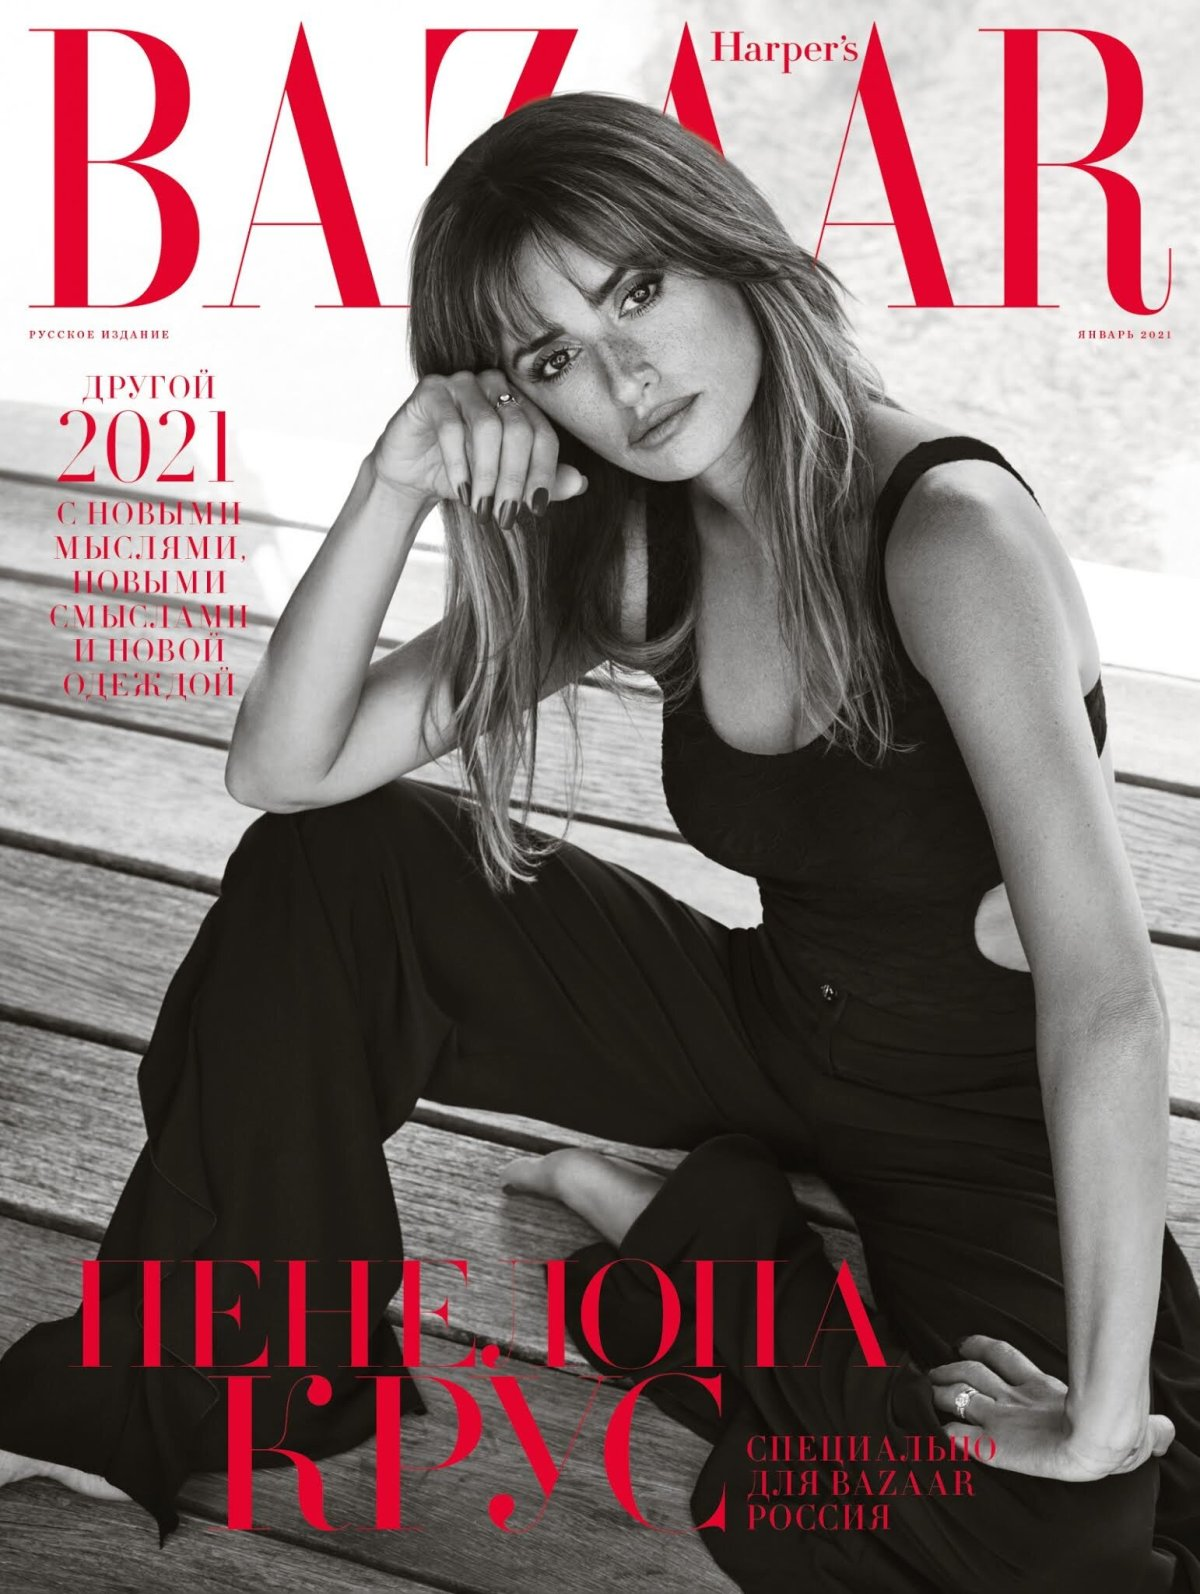 Penelope Cruz covers the January 2021 issue of Harper's Bazaar Russia. Photographed by Nico Bustos.